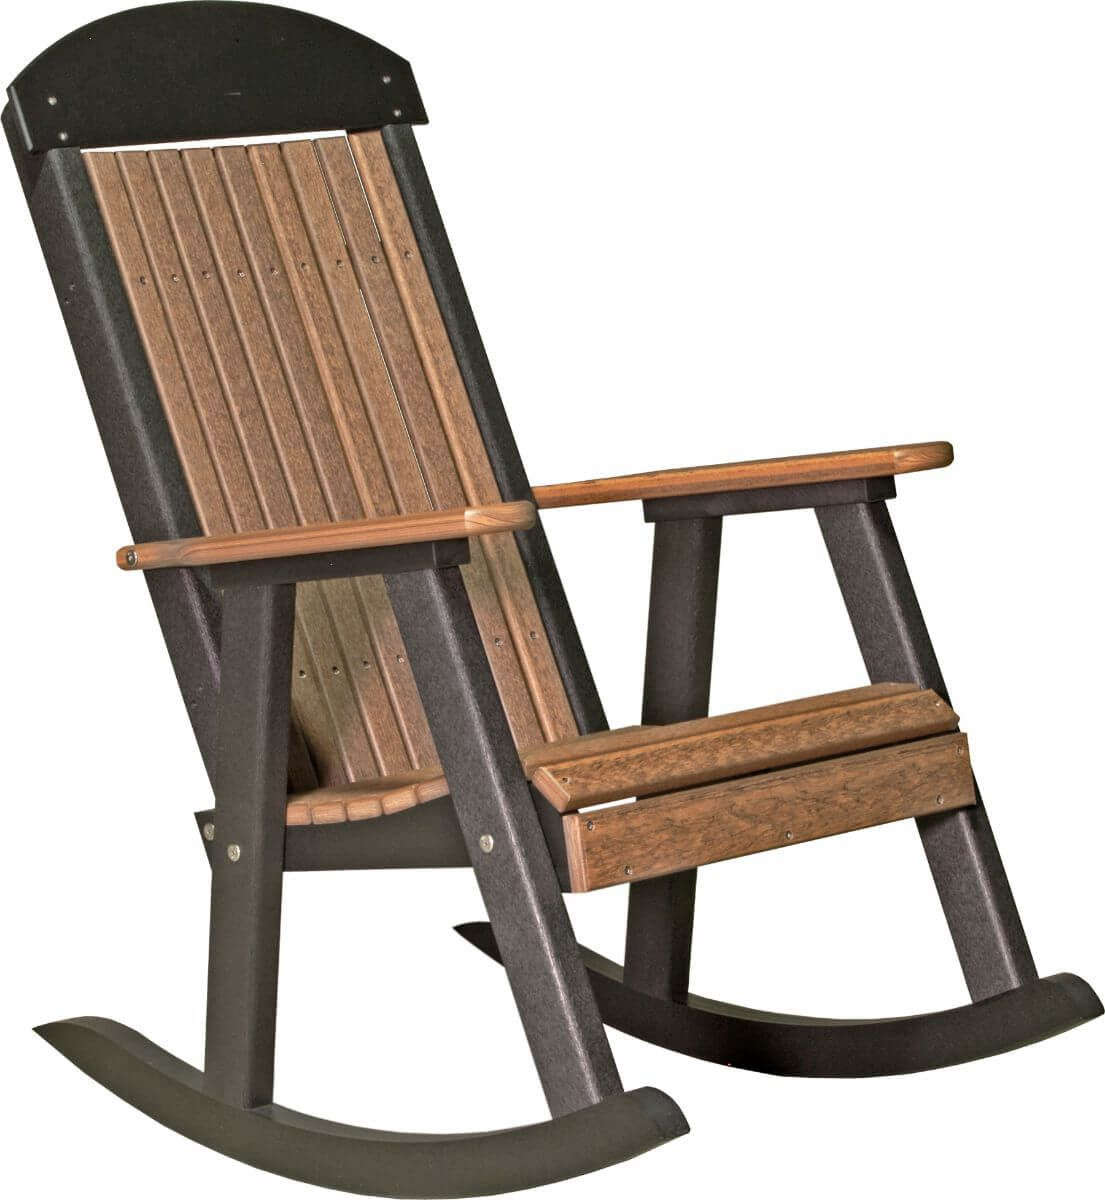 Antique Mahogany and Black Stockton Porch Rocker